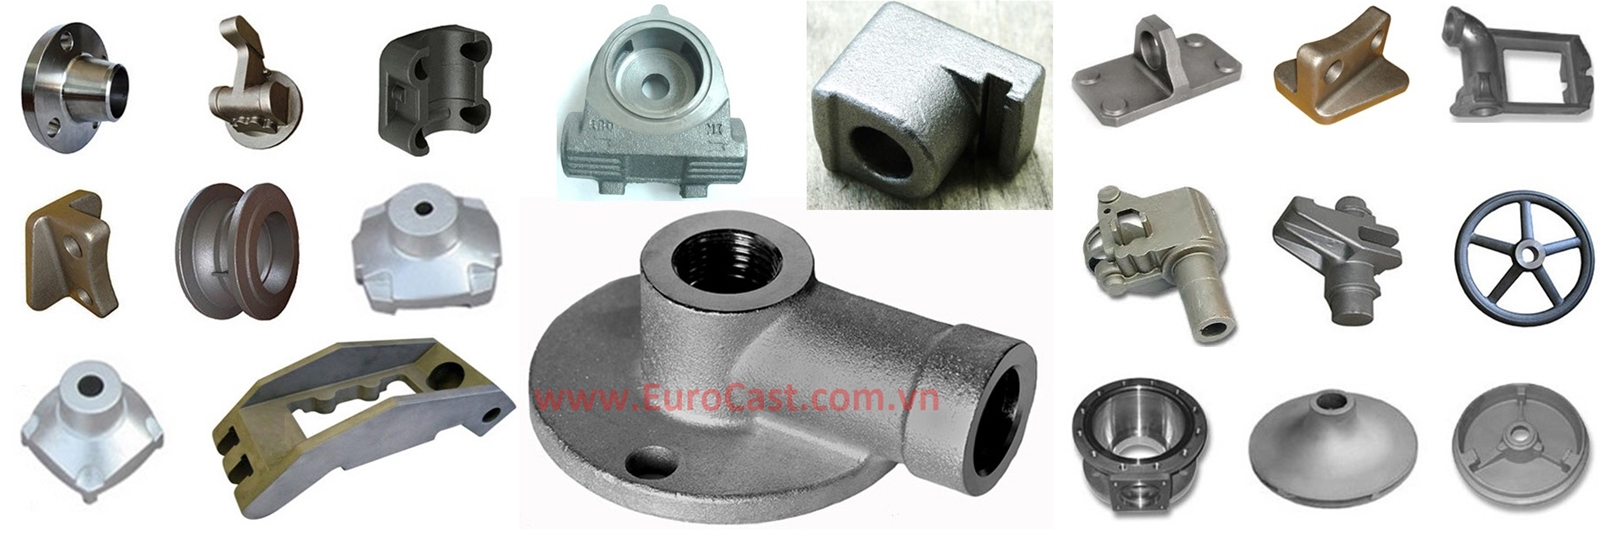 Mechanical Parts by investment casting